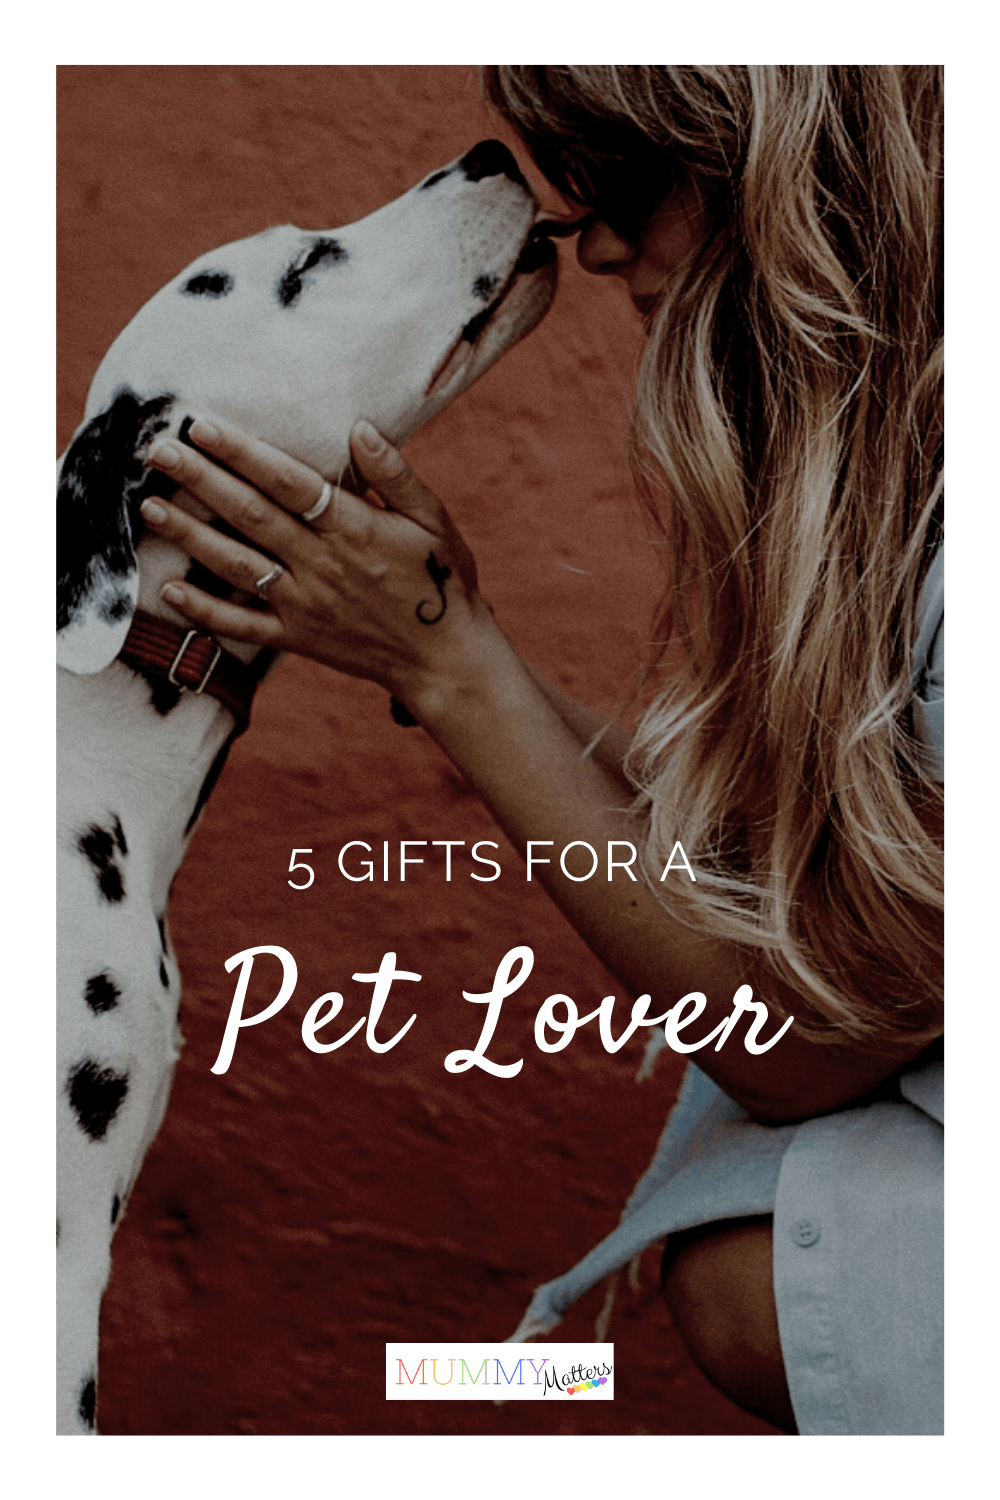 5 Gifts for a Pet Lover